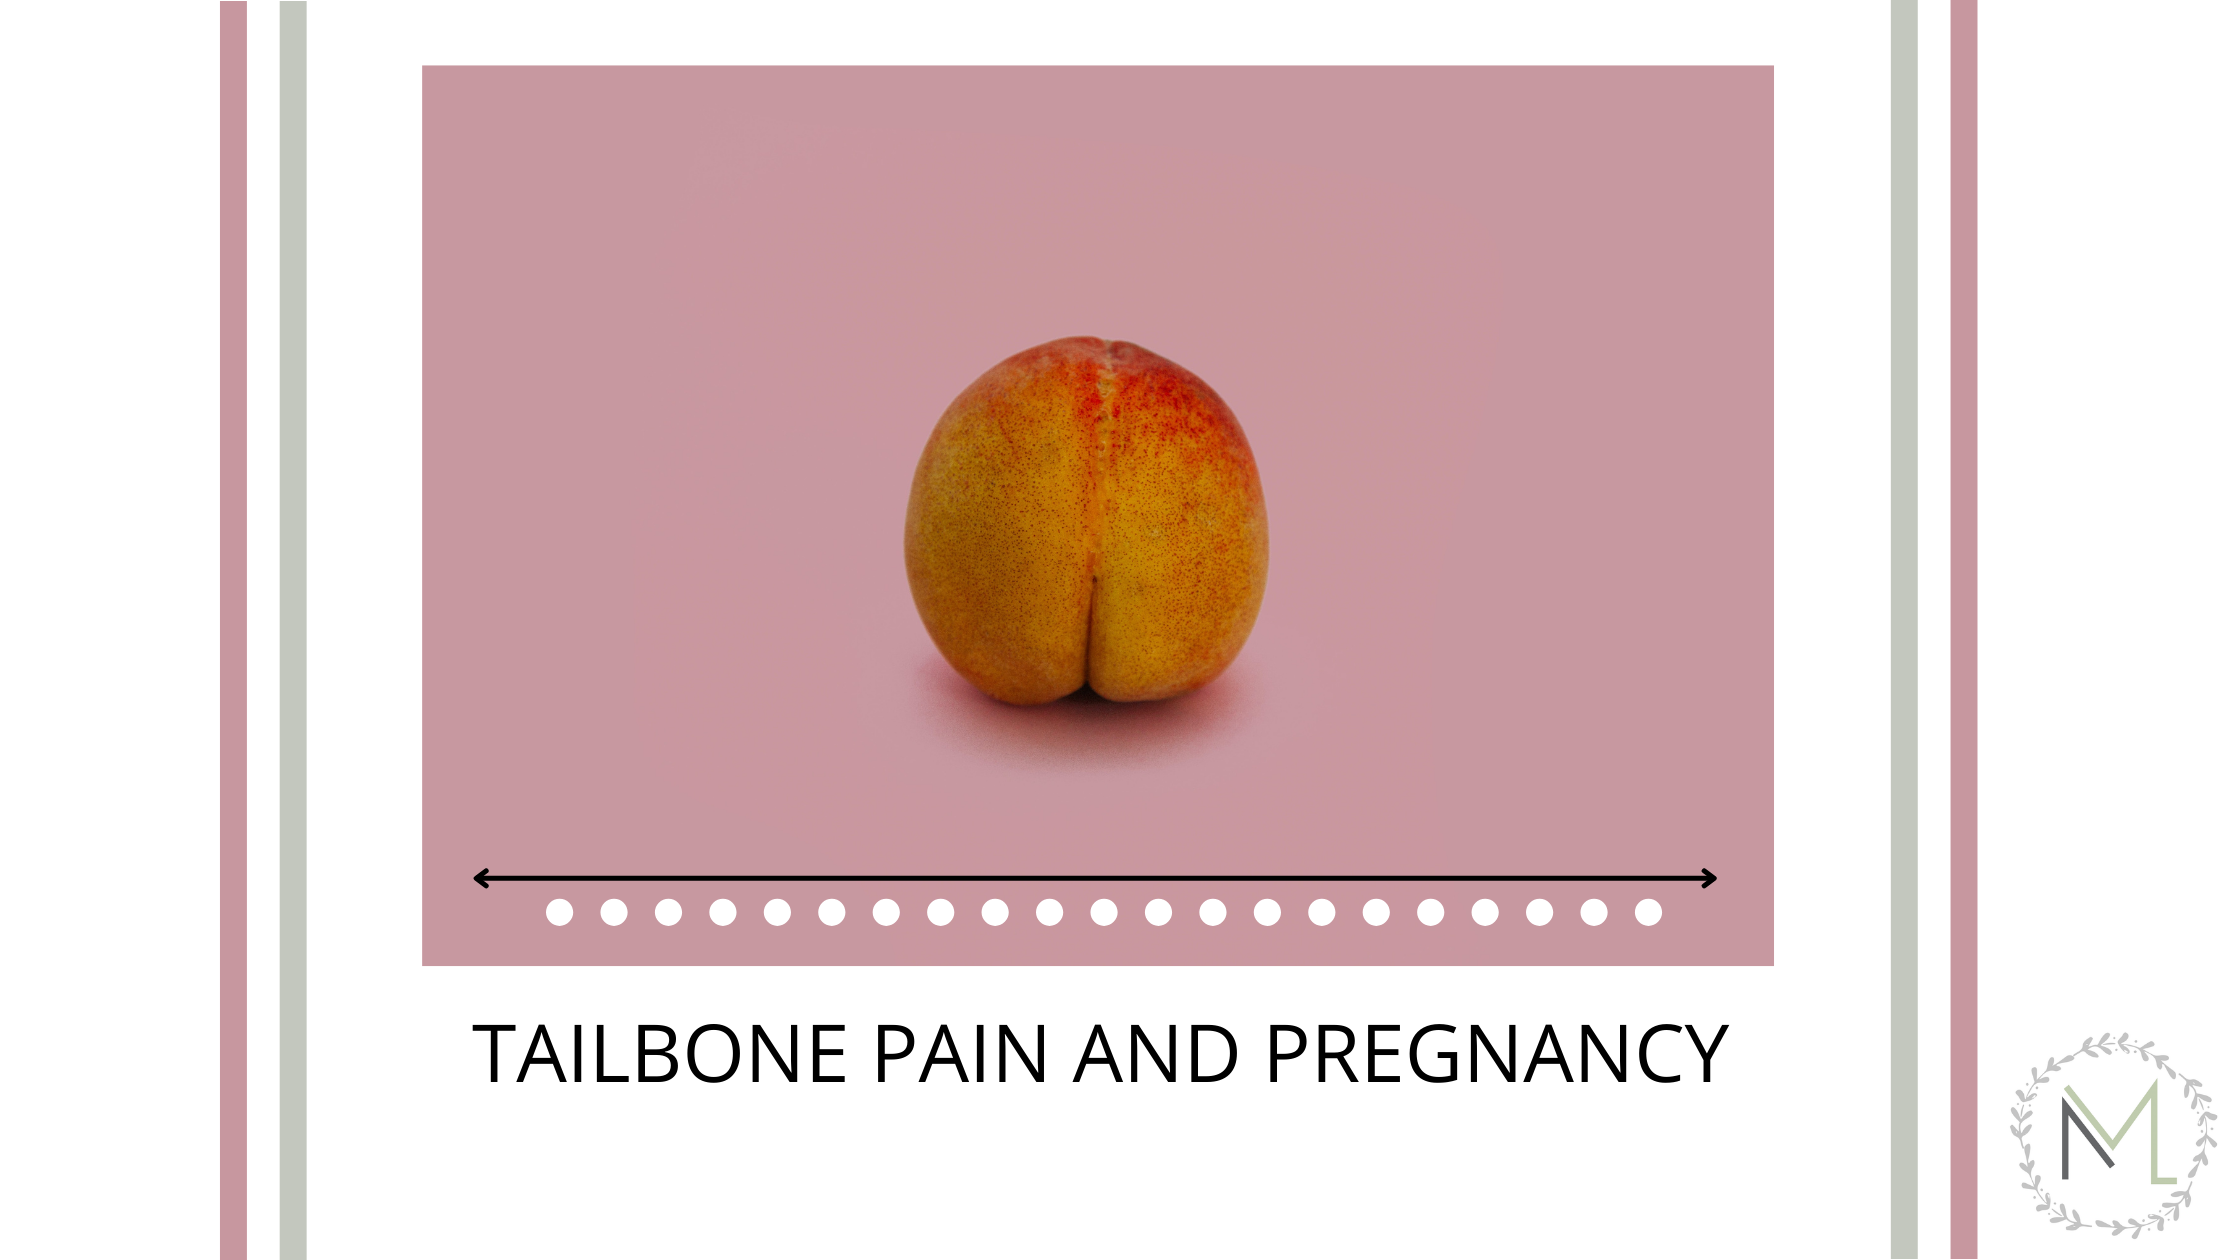 Tailbone Pain and Pregnancy